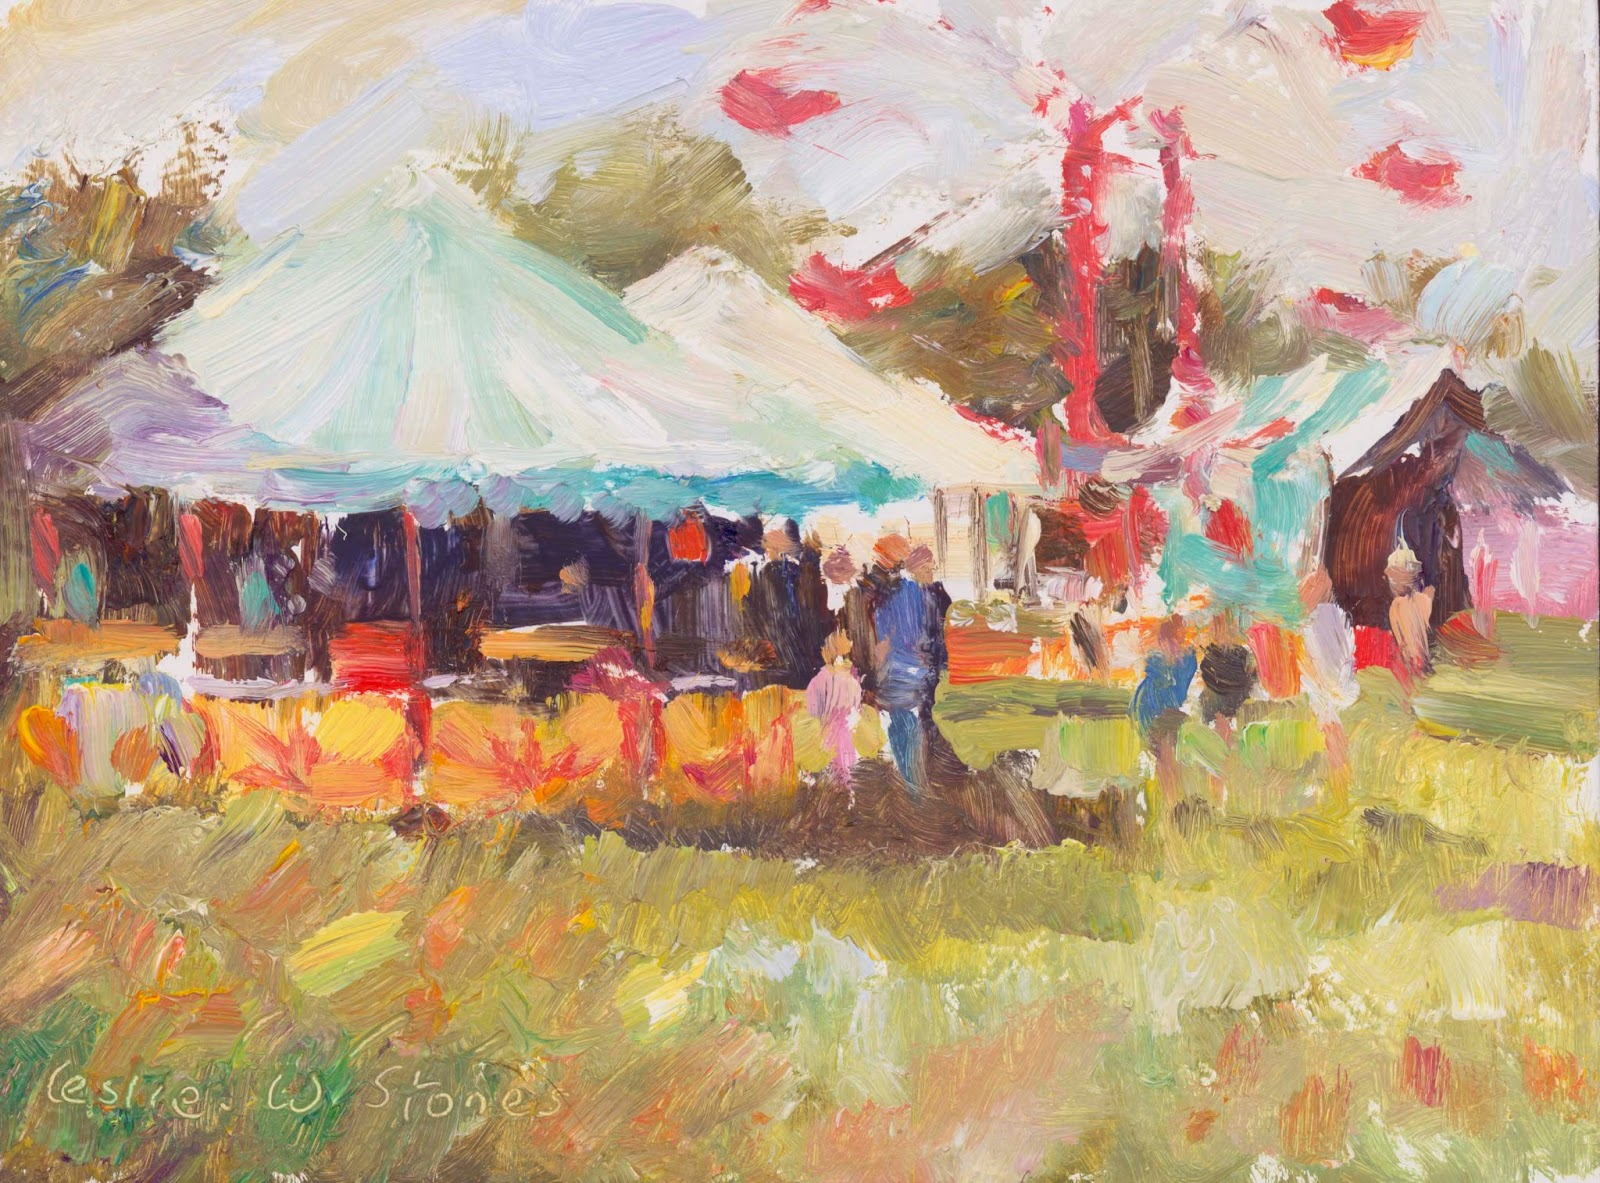 colourful oil painting of a fairground